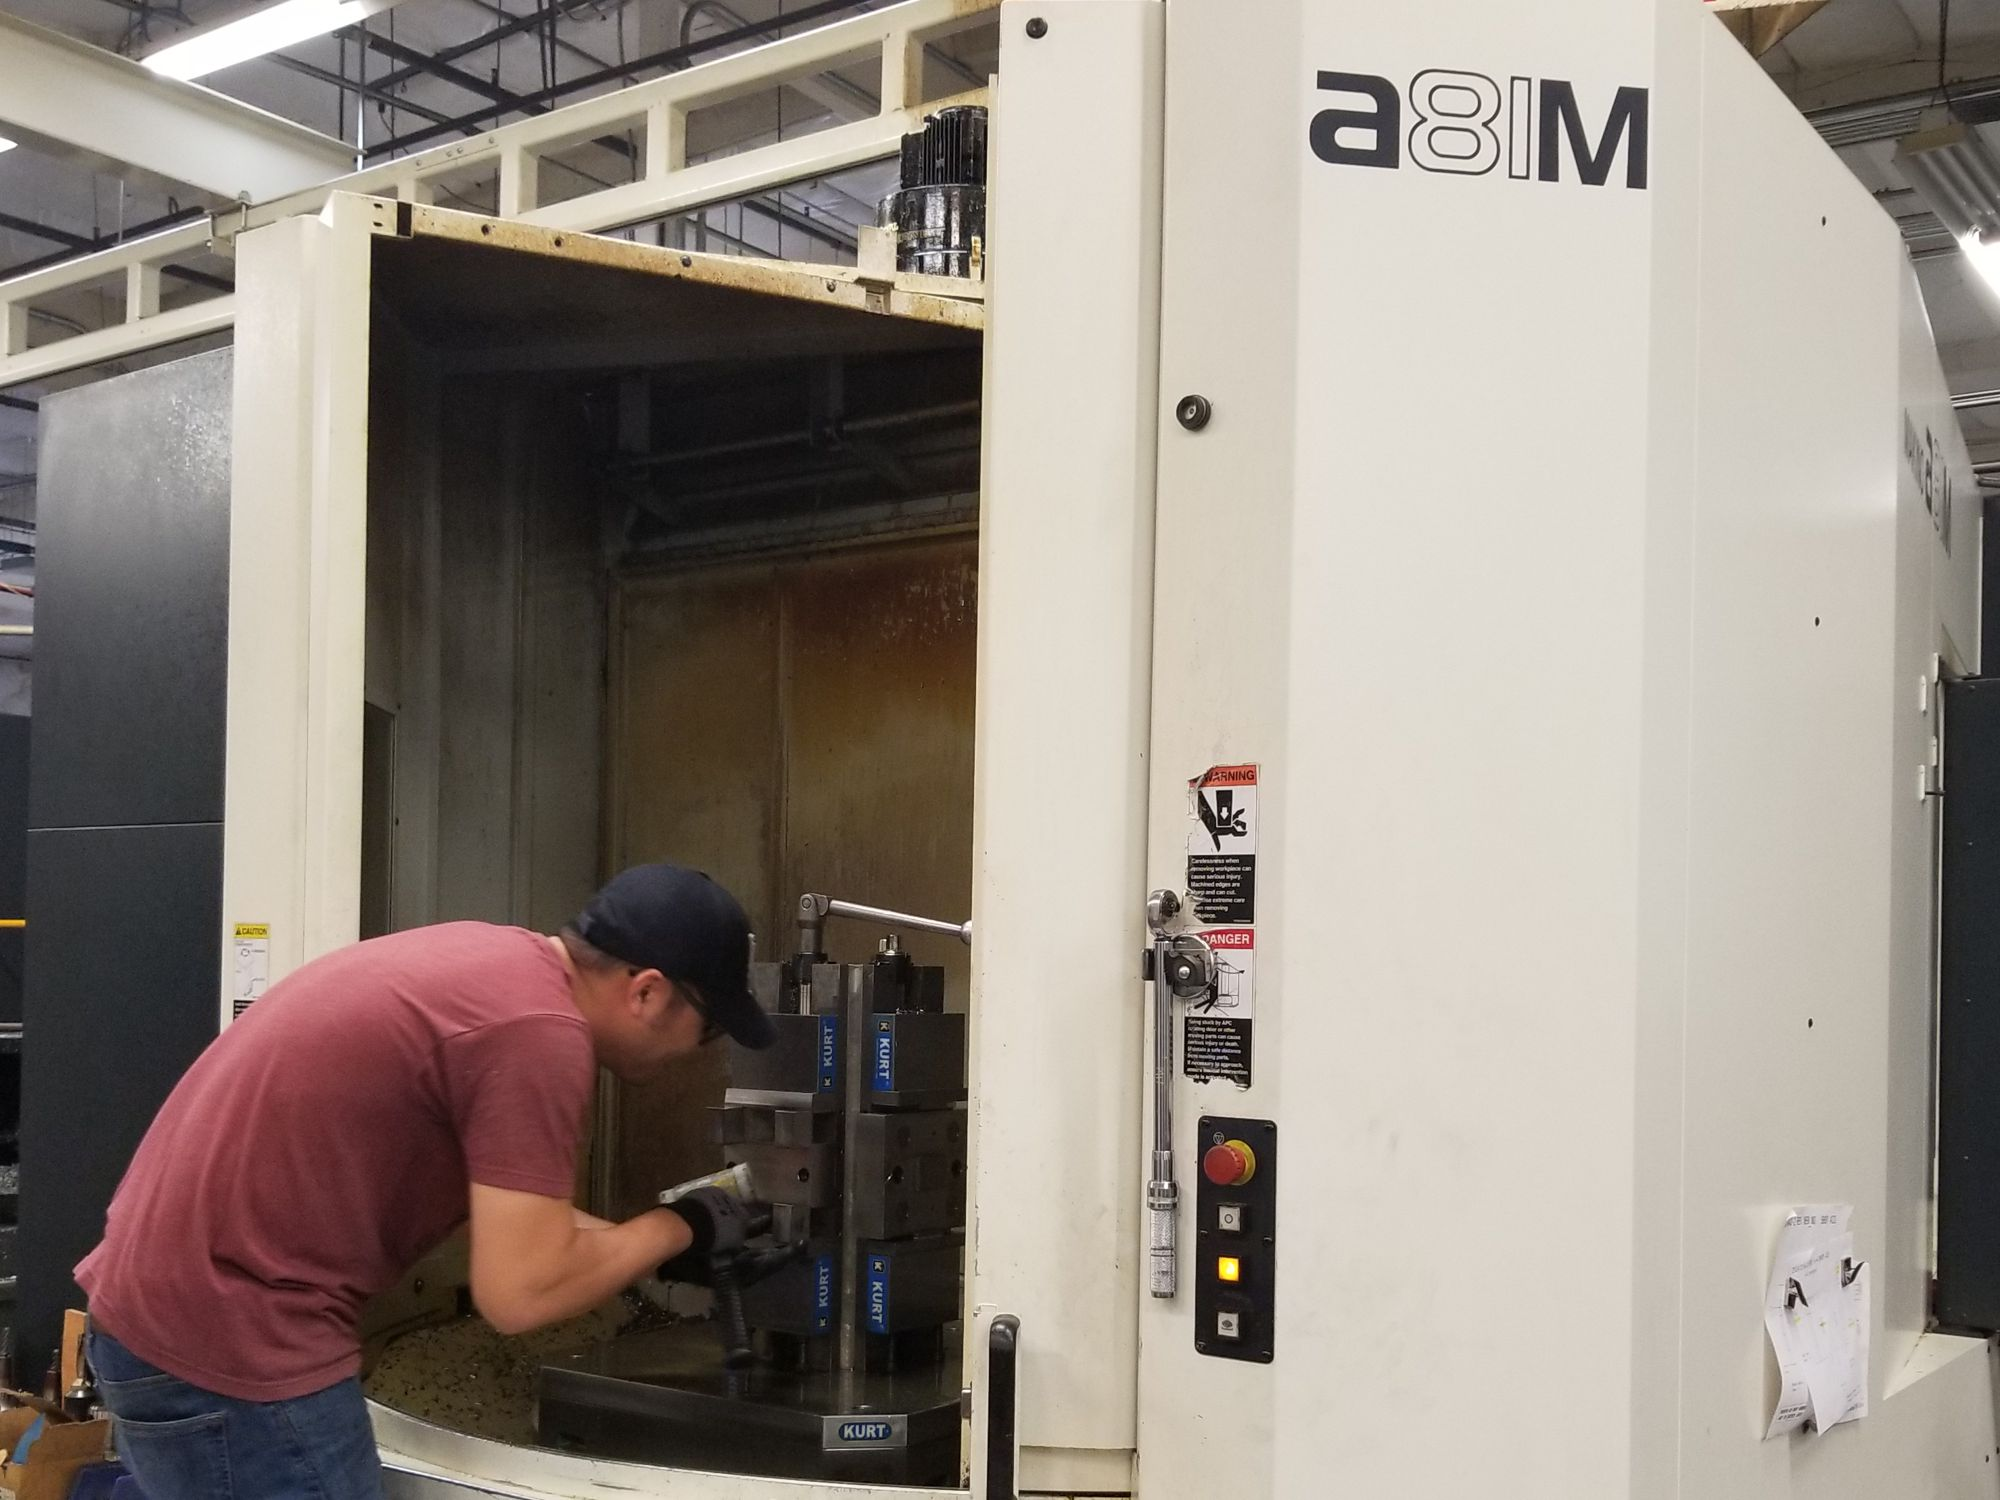 A81 M MAKINO M18 NEW Valley Machine Shop